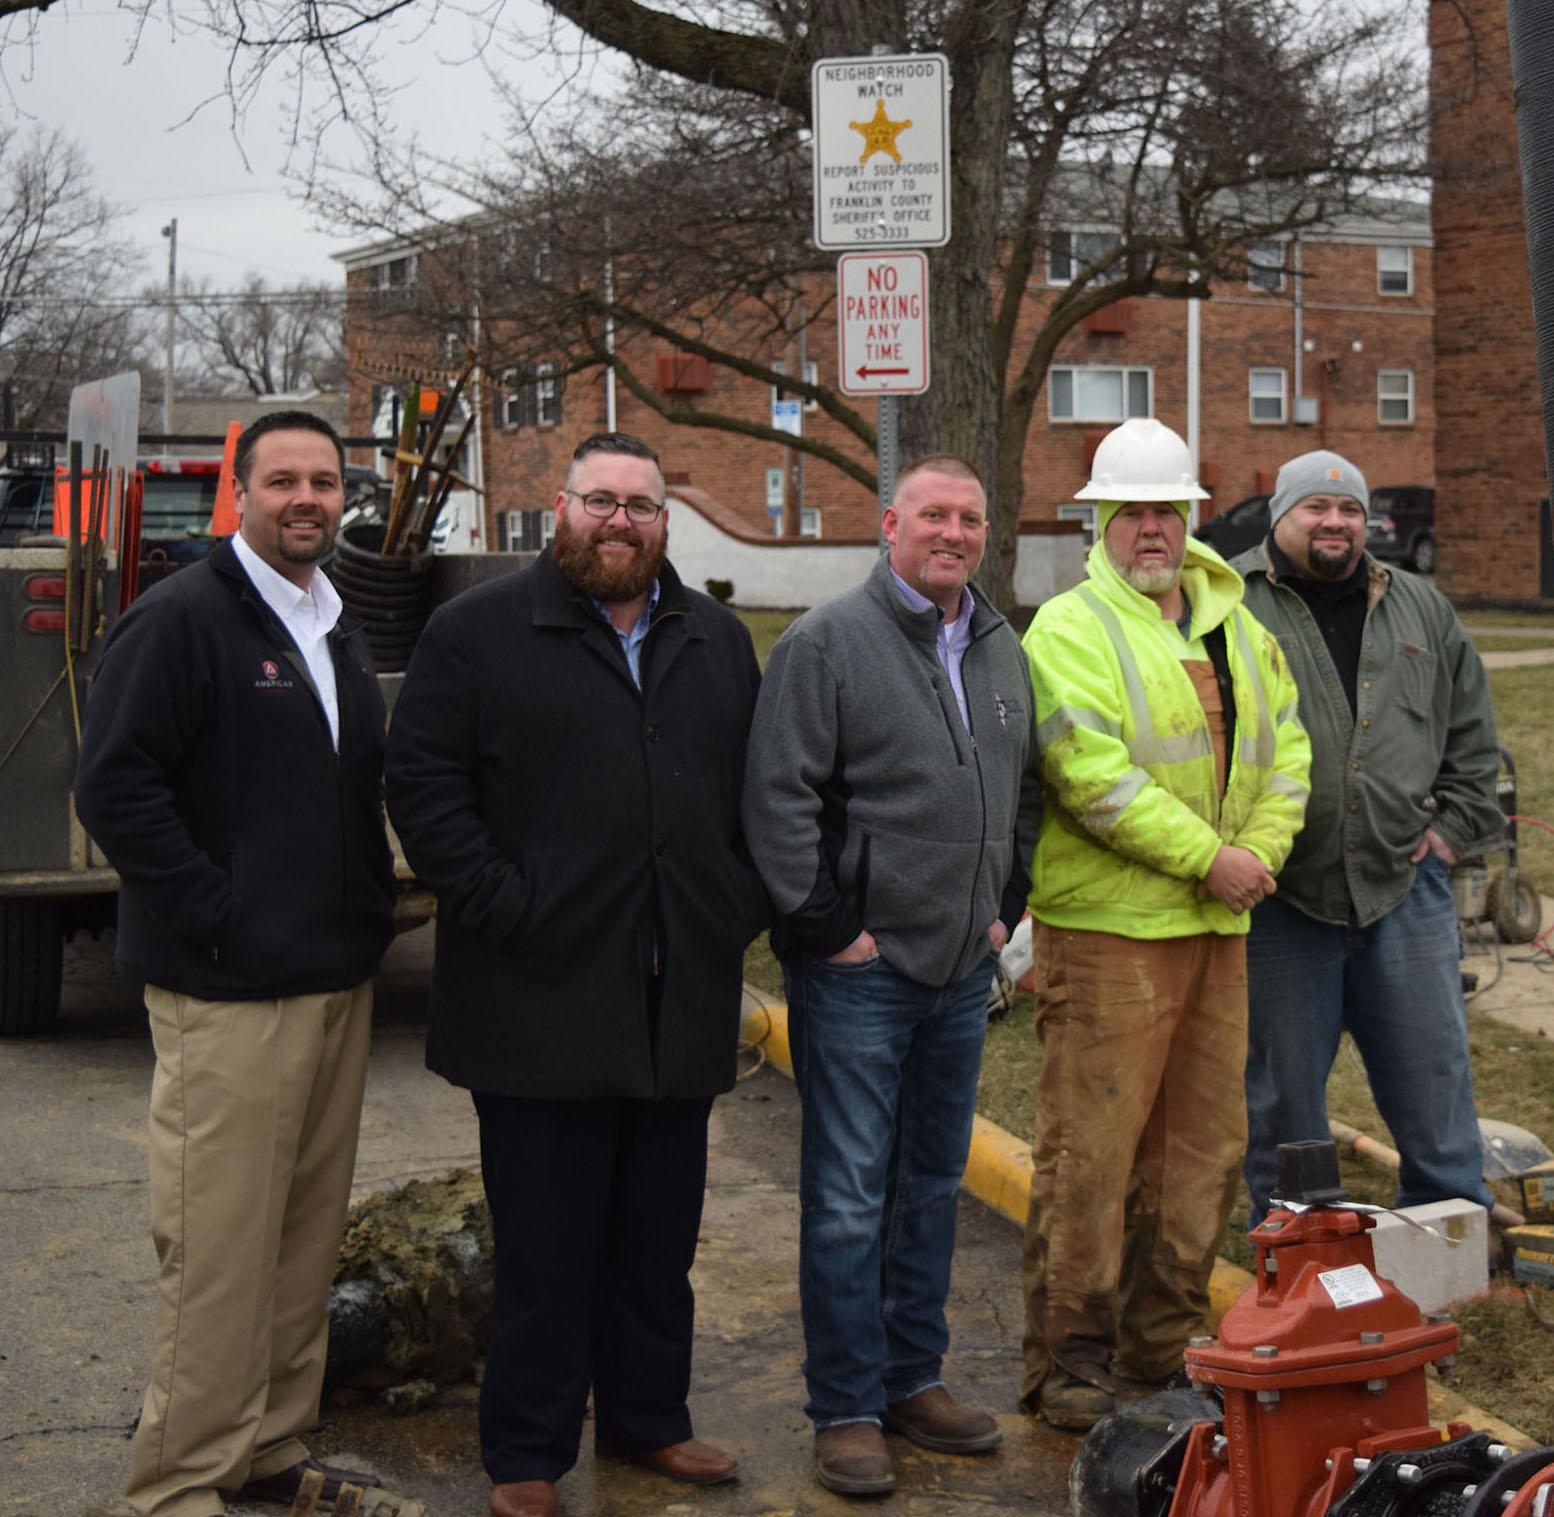 Left to right: AMERICAN Flow Control Salesman Eric Rohrbaugh; Ferguson Waterworks Salesman Keith Strahler; and with Elite Excavating: President Scott Fulmer, Foreman Dan Biddle and Chief Estimator Dale Stevens.